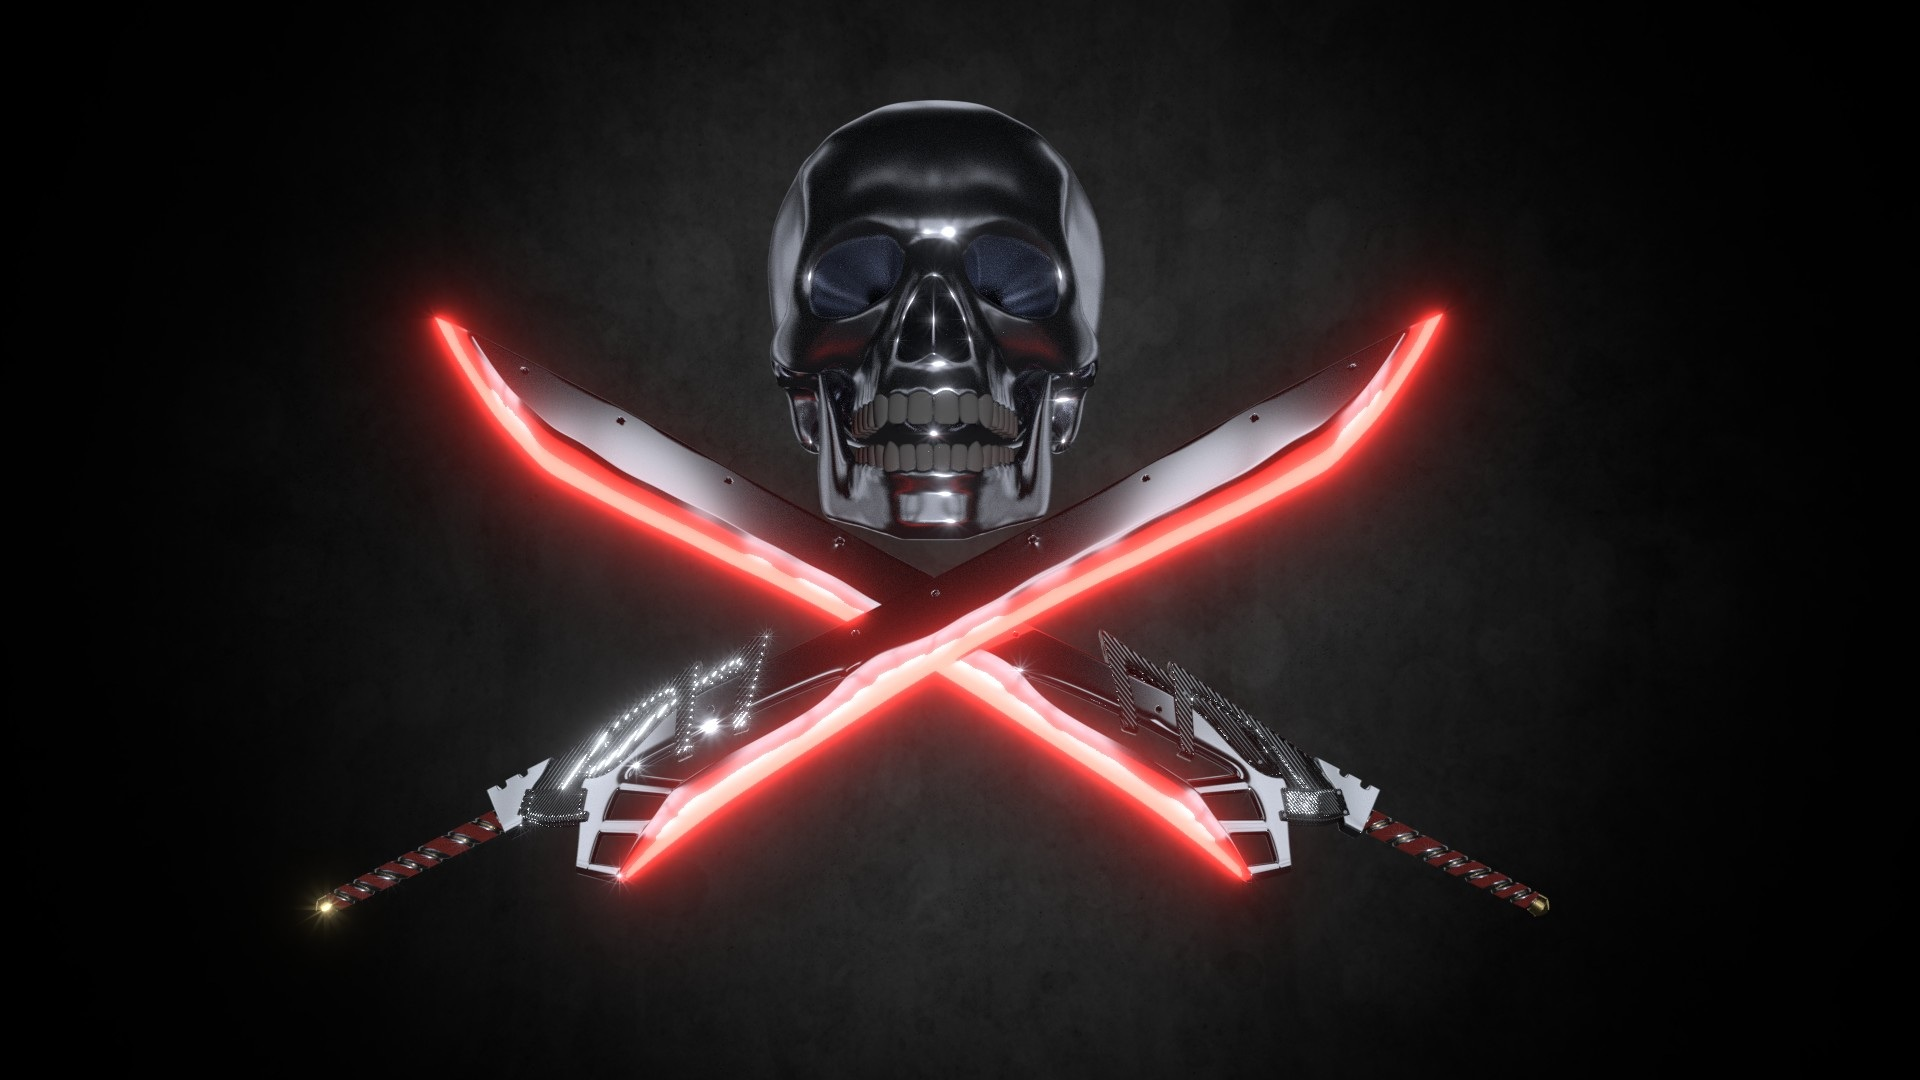 Different Take On Pirate Skull And Crossbones Hd Wallpaper